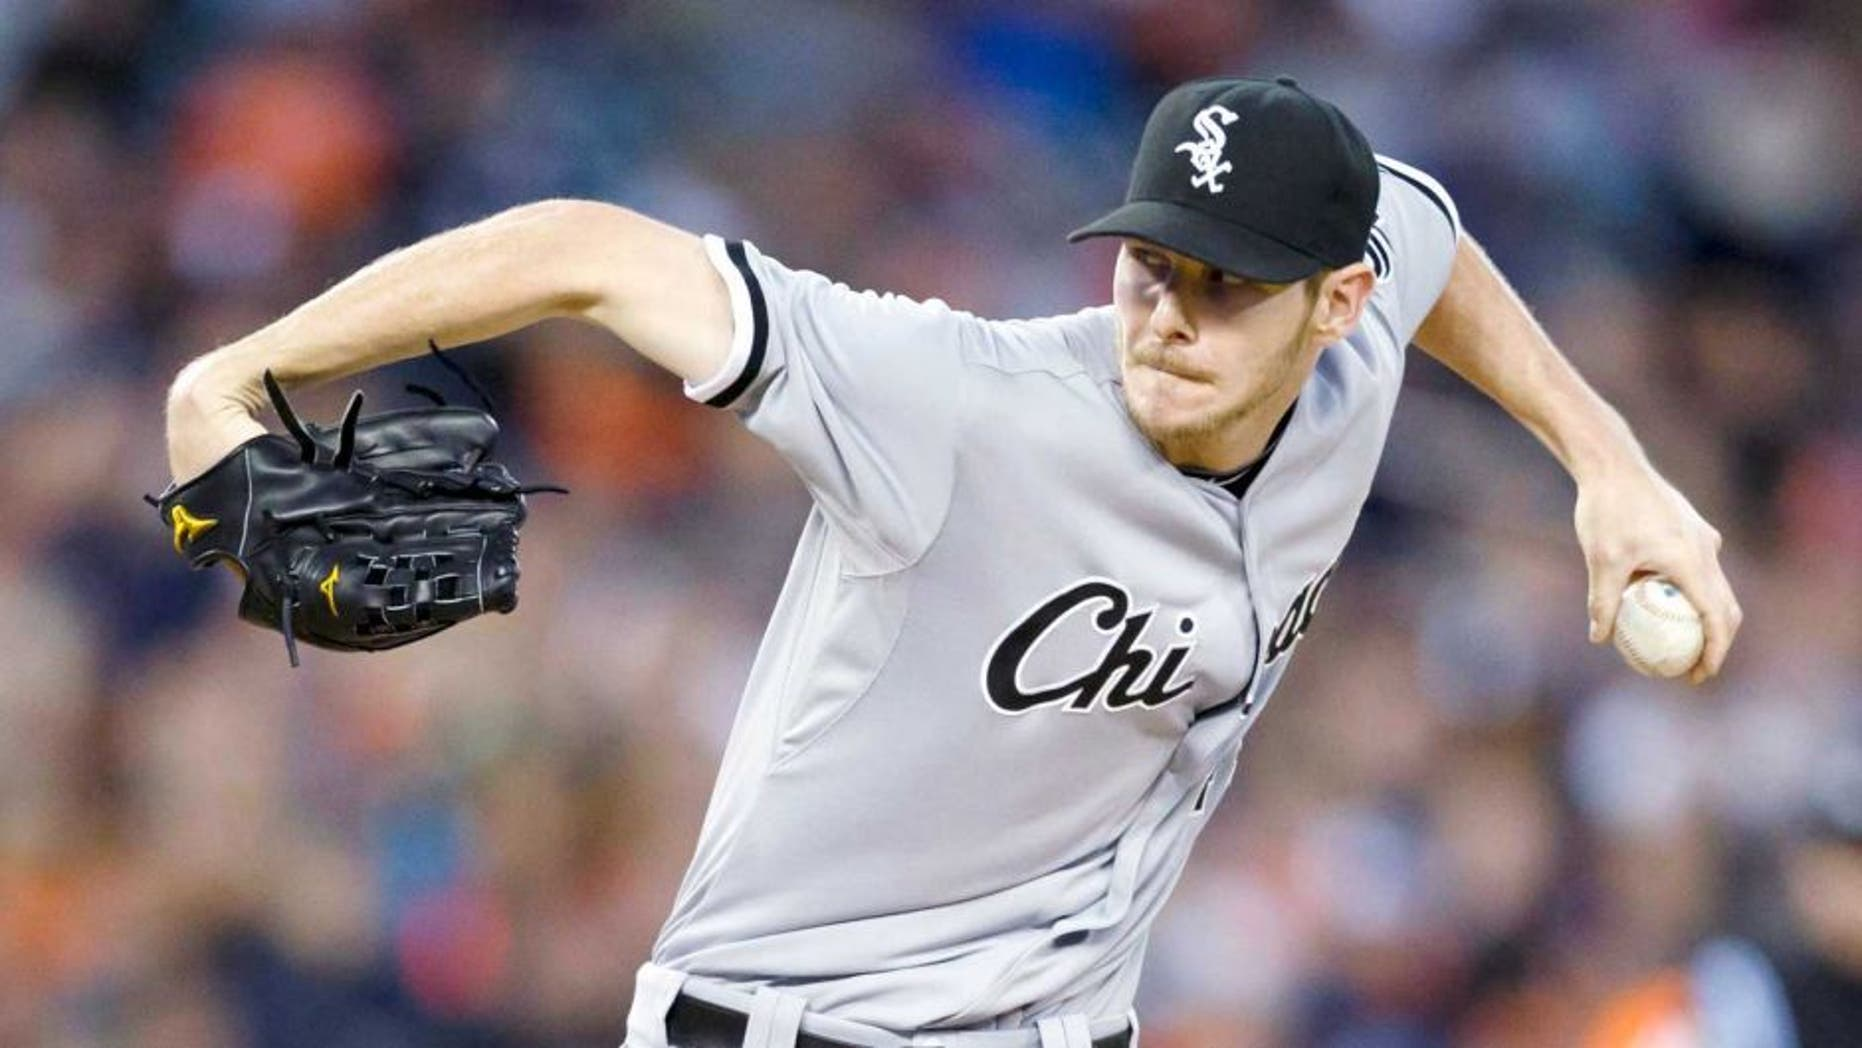 Sep 21, 2013; Detroit, MI, USA; Chicago White Sox starting pitcher Chris Sale (49) pitches in the second inning against the Detroit Tigers at Comerica Park. Mandatory Credit: Rick Osentoski-USA TODAY Sports